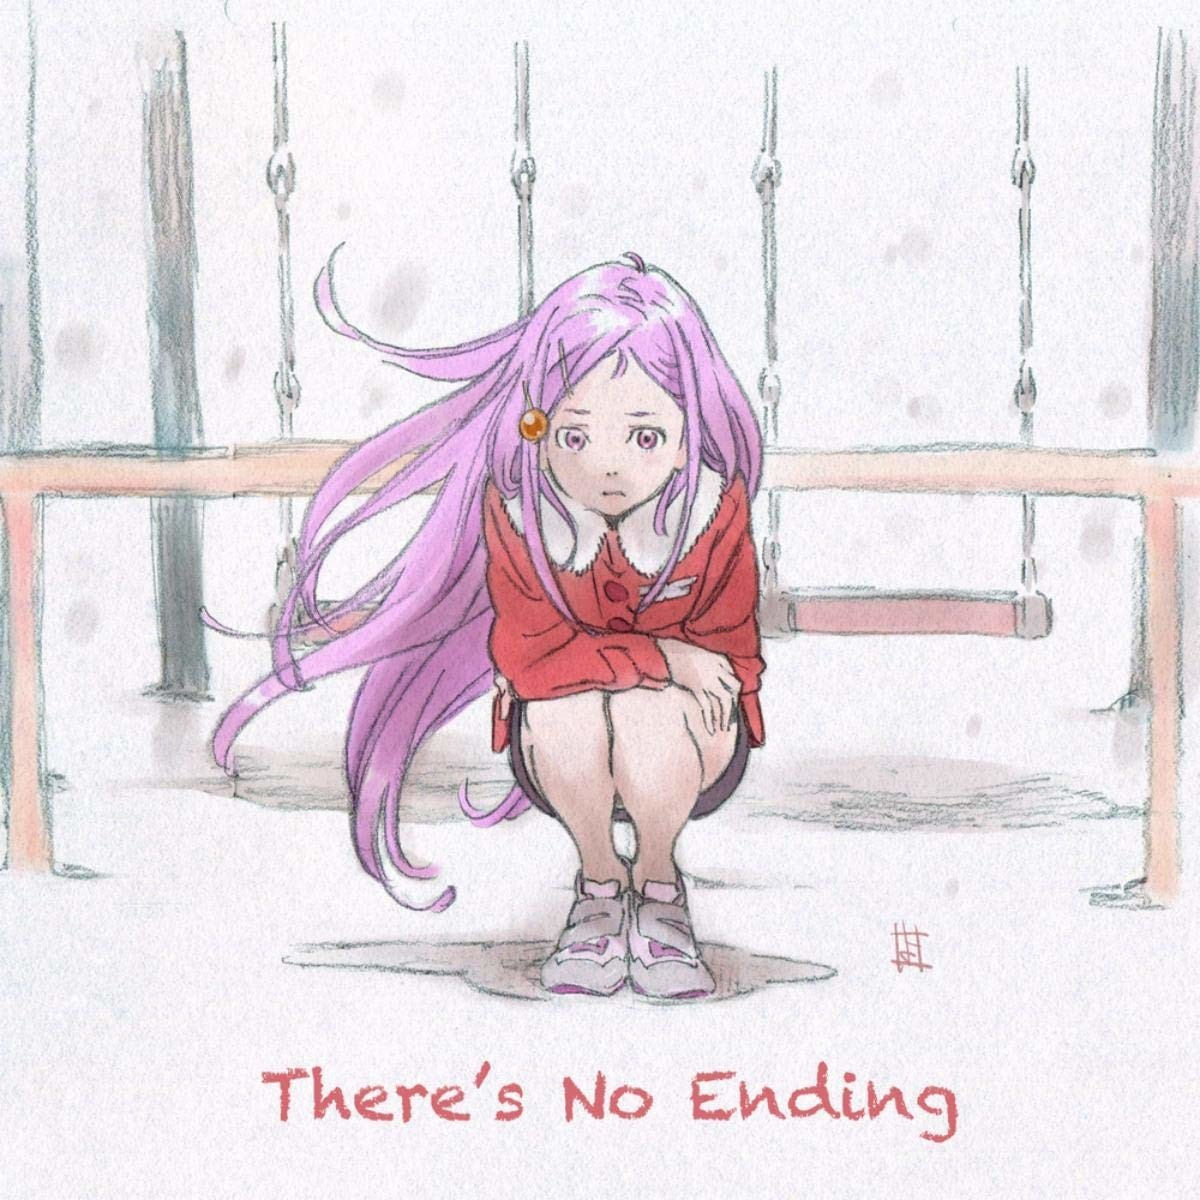 There's No Ending